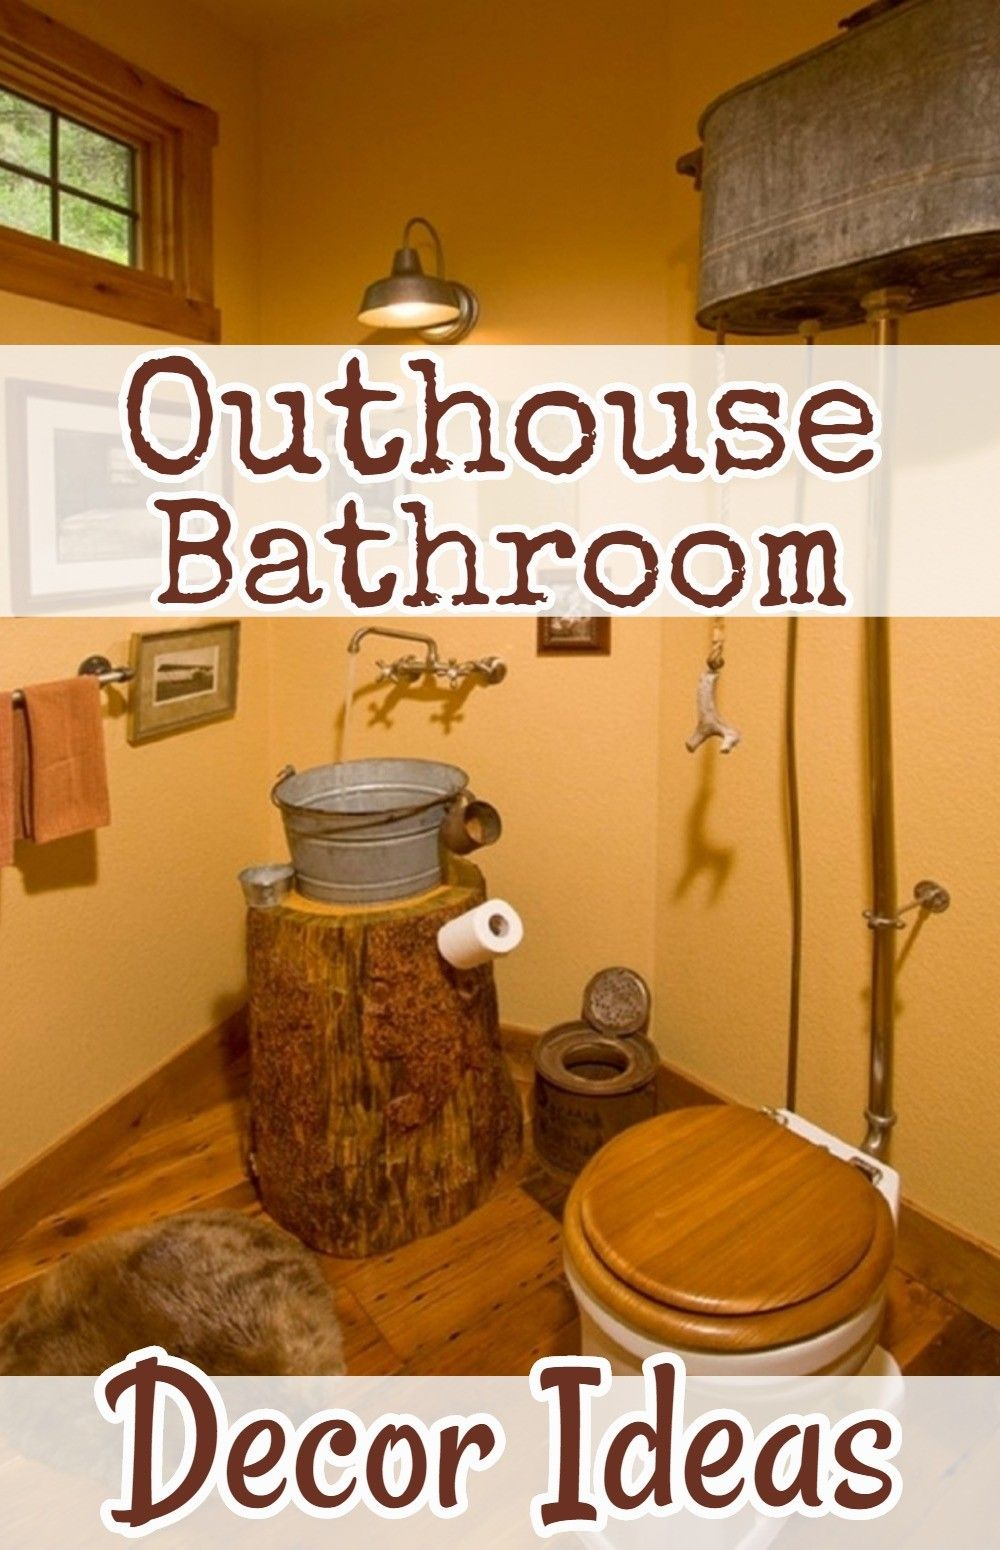 Country Outhouse Bathroom Decorating Ideas • Outhouse Bathroom Decor ...